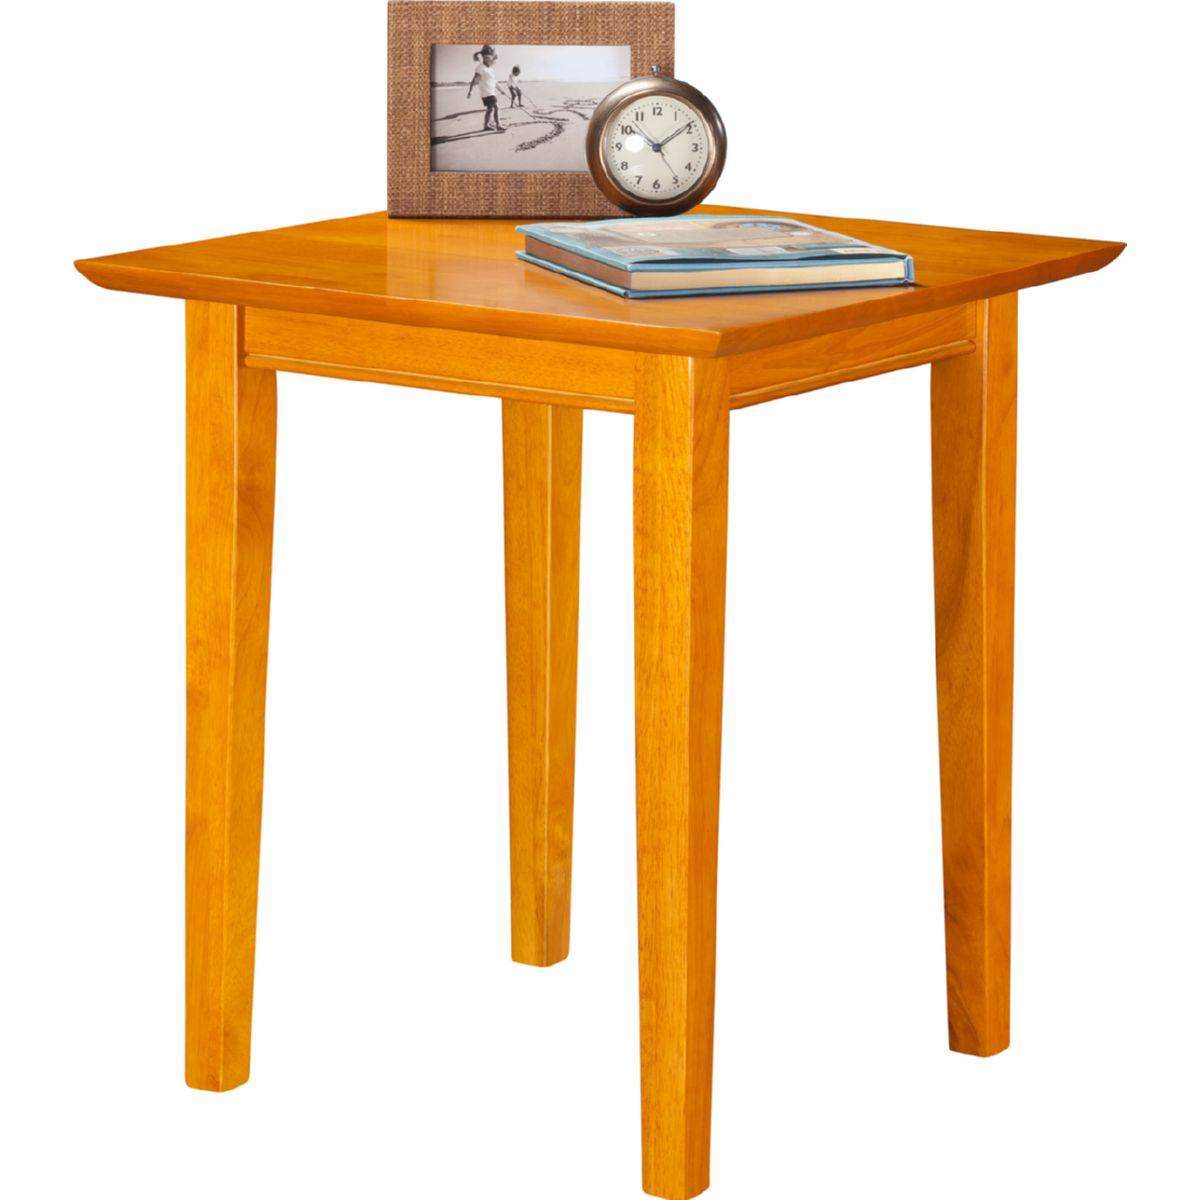 Attrayant Atlantic Furniture Shaker End Table In Caramel Latte. Hover To Zoom